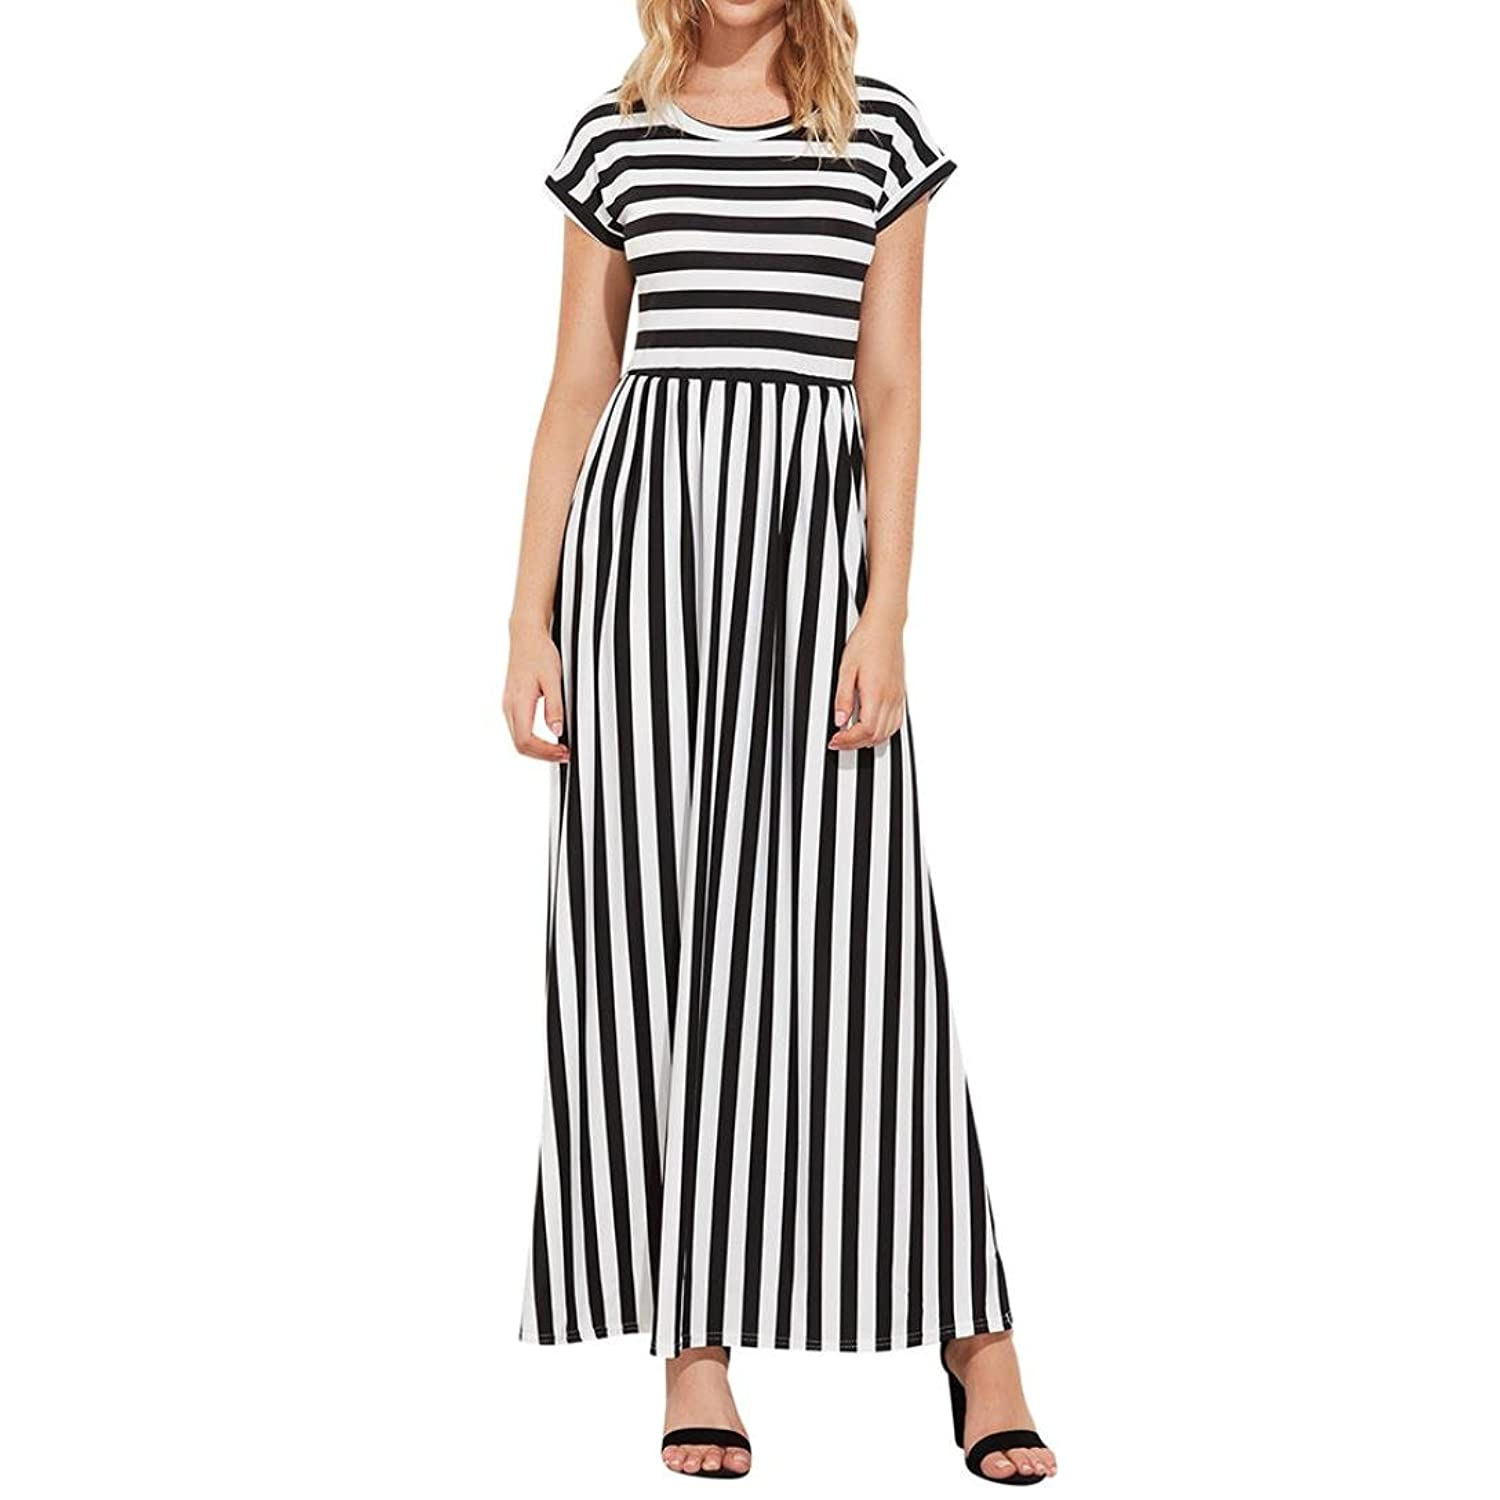 Misaky Womens Short Sleeve ElasticWaist Striped Casual Maxi Dress with Pockets at Amazon Womens Clothing store: